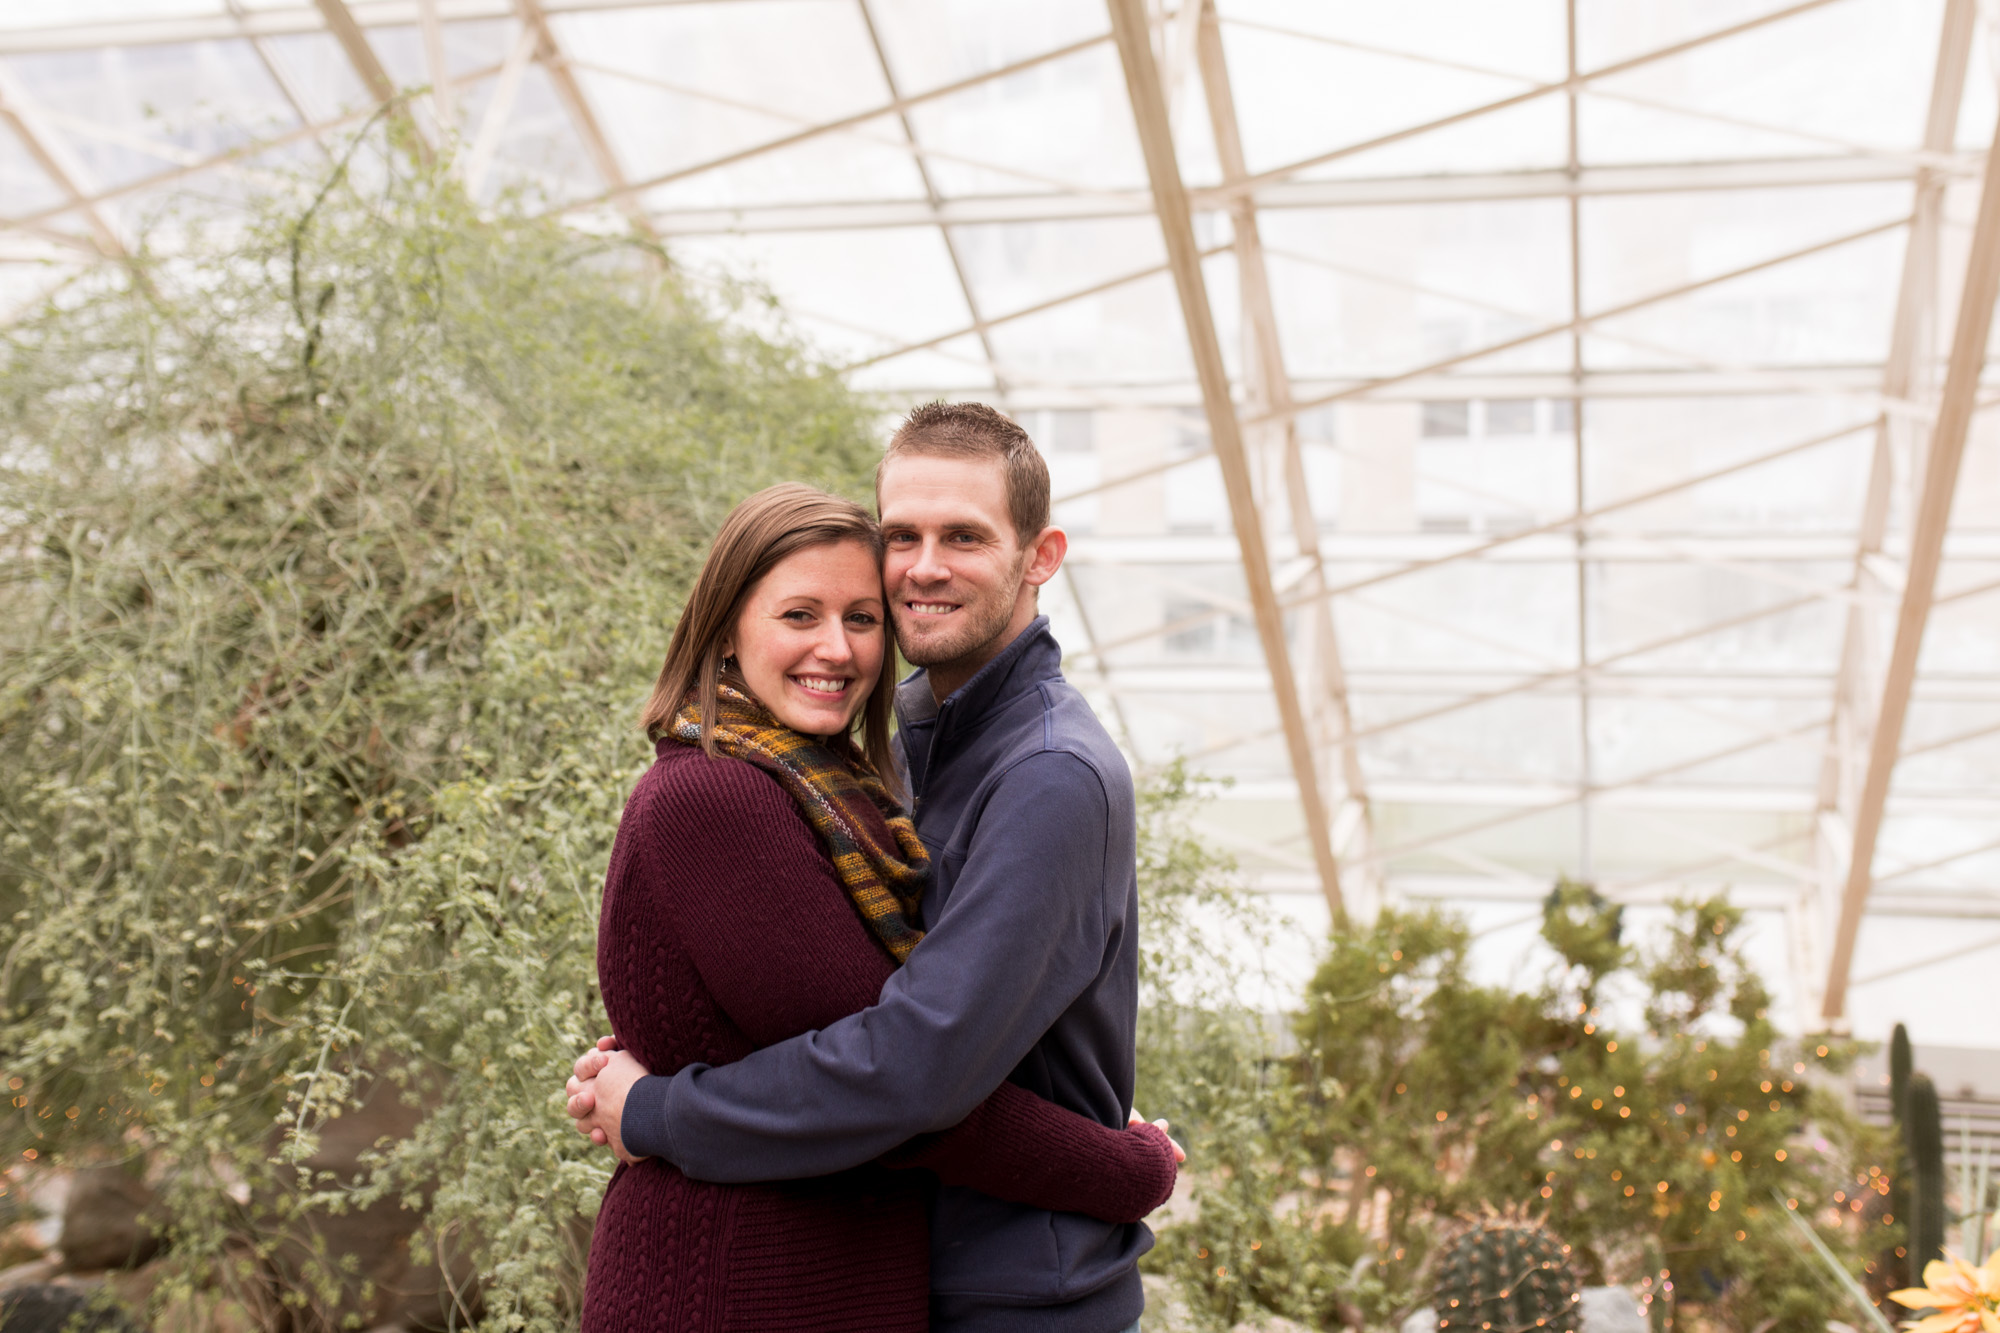 family photographer session at Foellinger-Freimann Botanical Conservatory in Fort Wayne Indiana